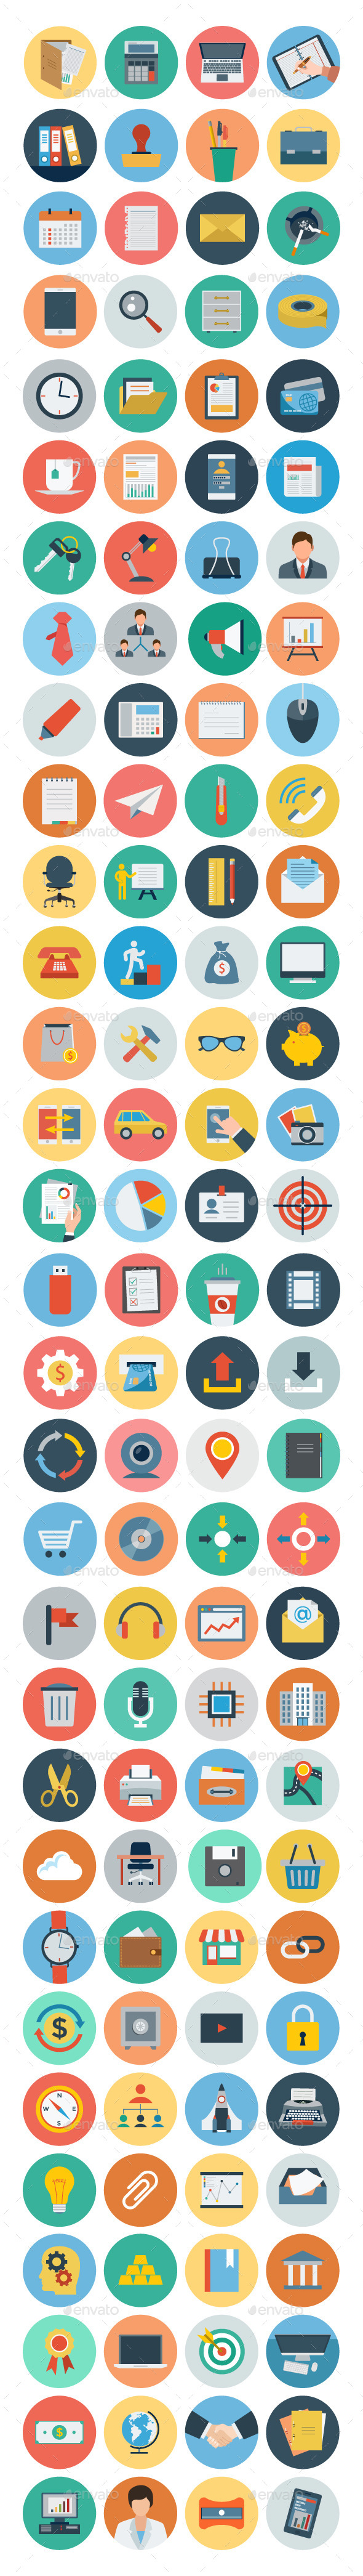 GraphicRiver 120& Office Flat Icons 10550759